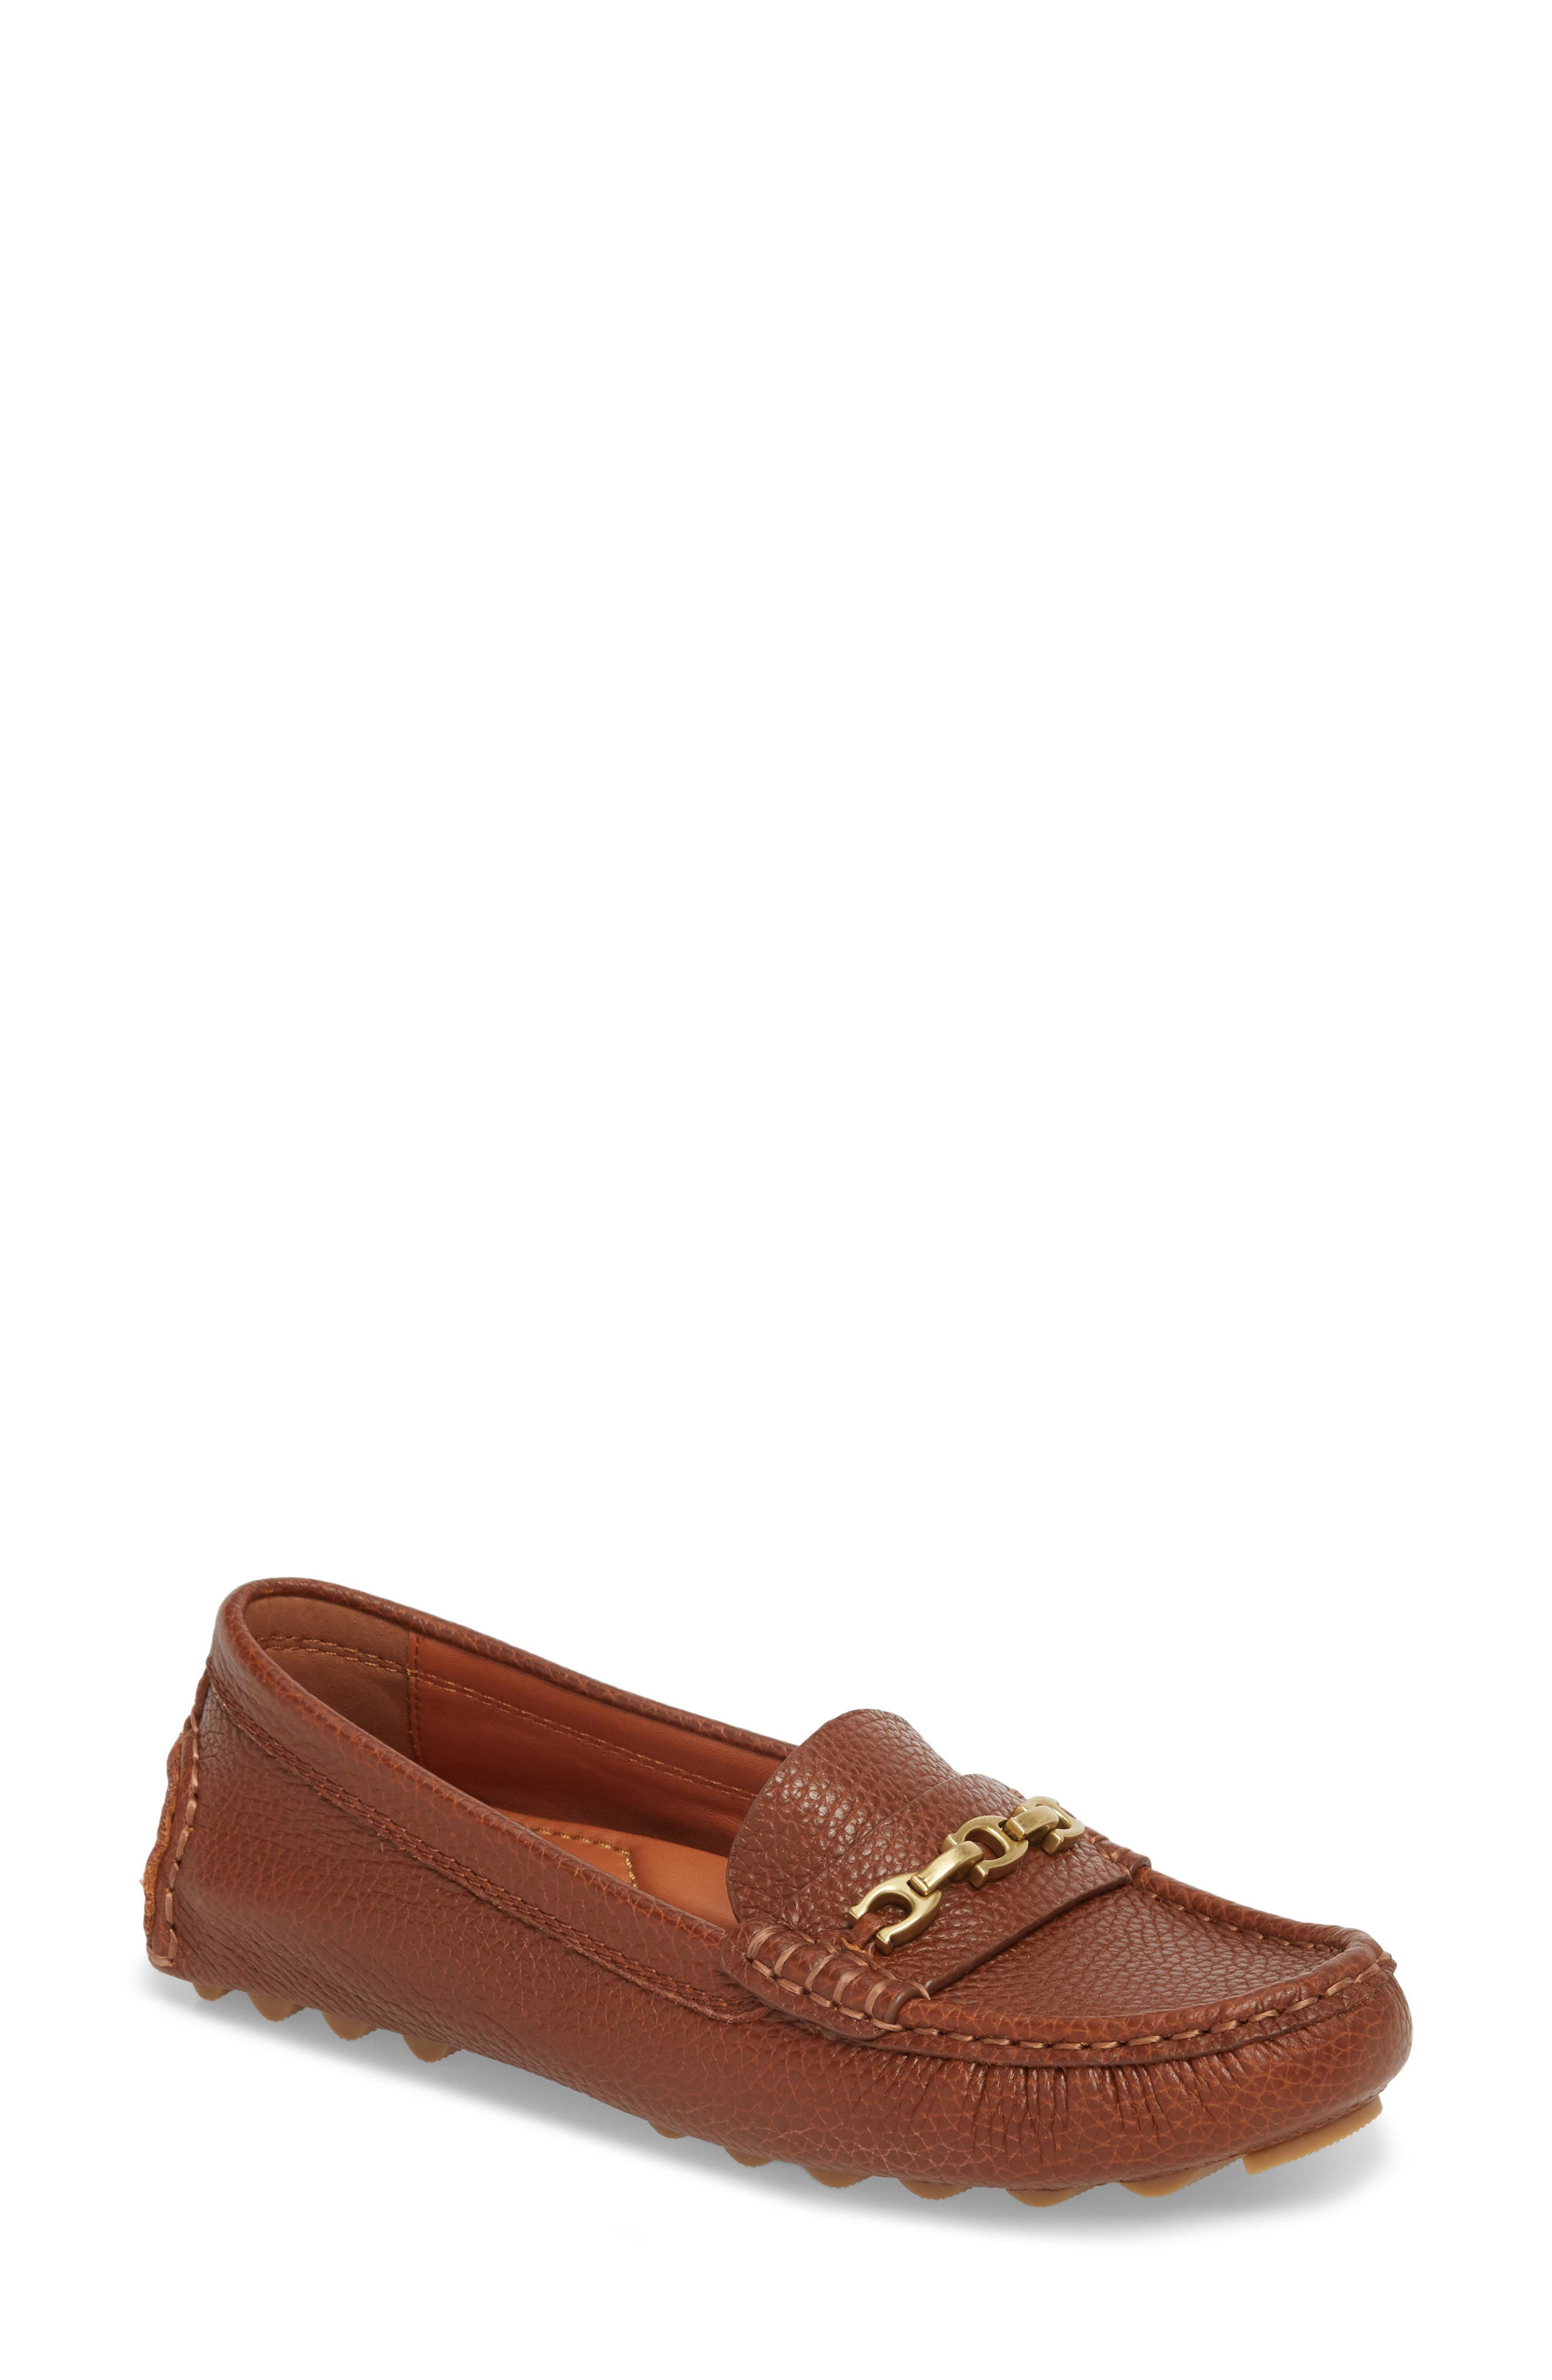 Crosby Driver Loafer,                         Main,                         color, LION PEBBLED LEATHER